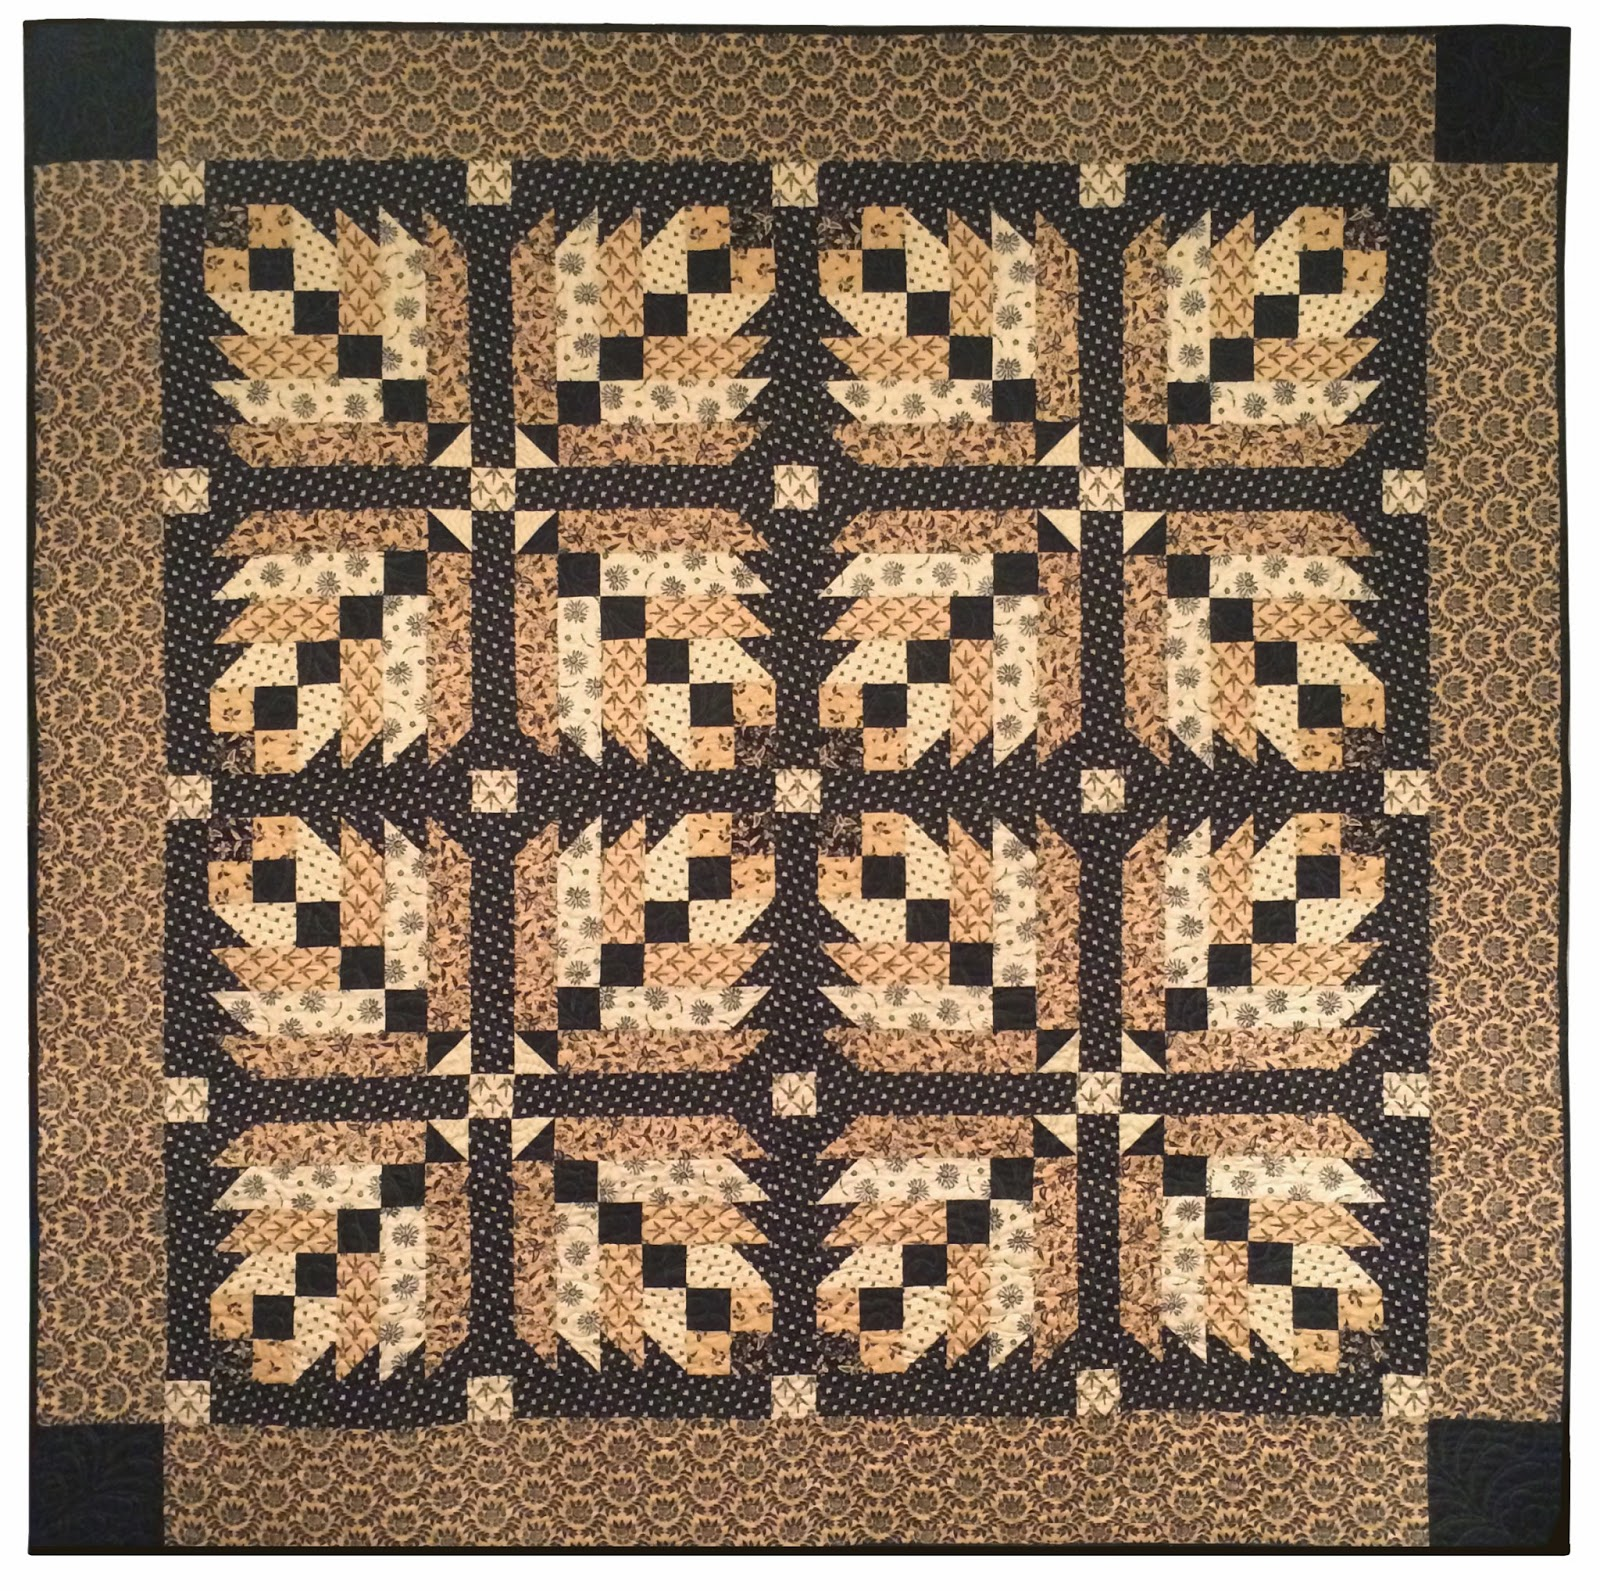 http://www.kathyschmitz.com/shop/Quilt-Patterns.htm